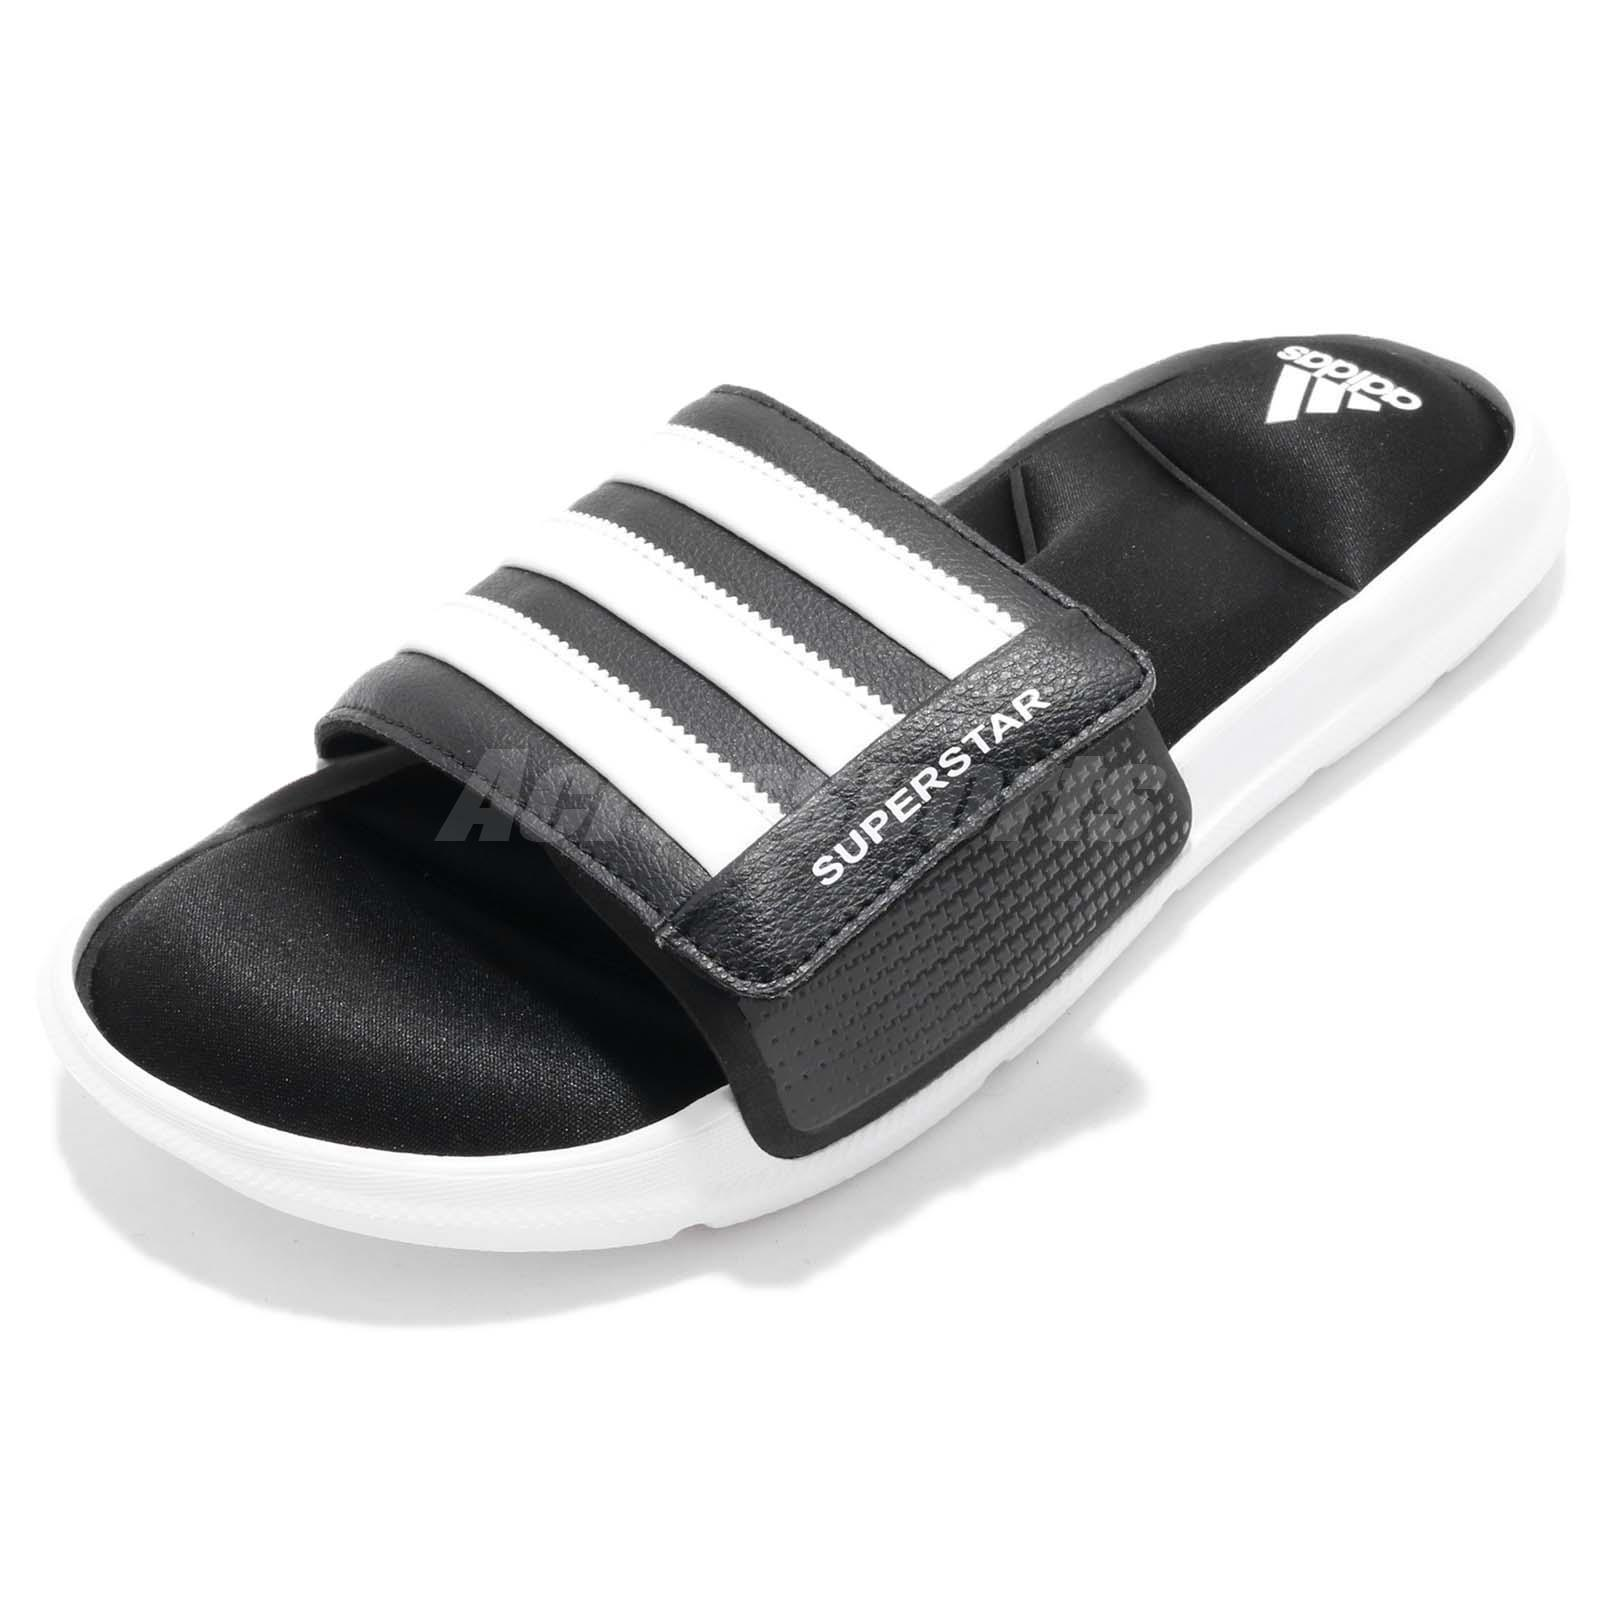 ddd3d10eaef3 Details about adidas Superstar 5G Slide Black White EVA Men Sports Sandal  Slippers AC8325